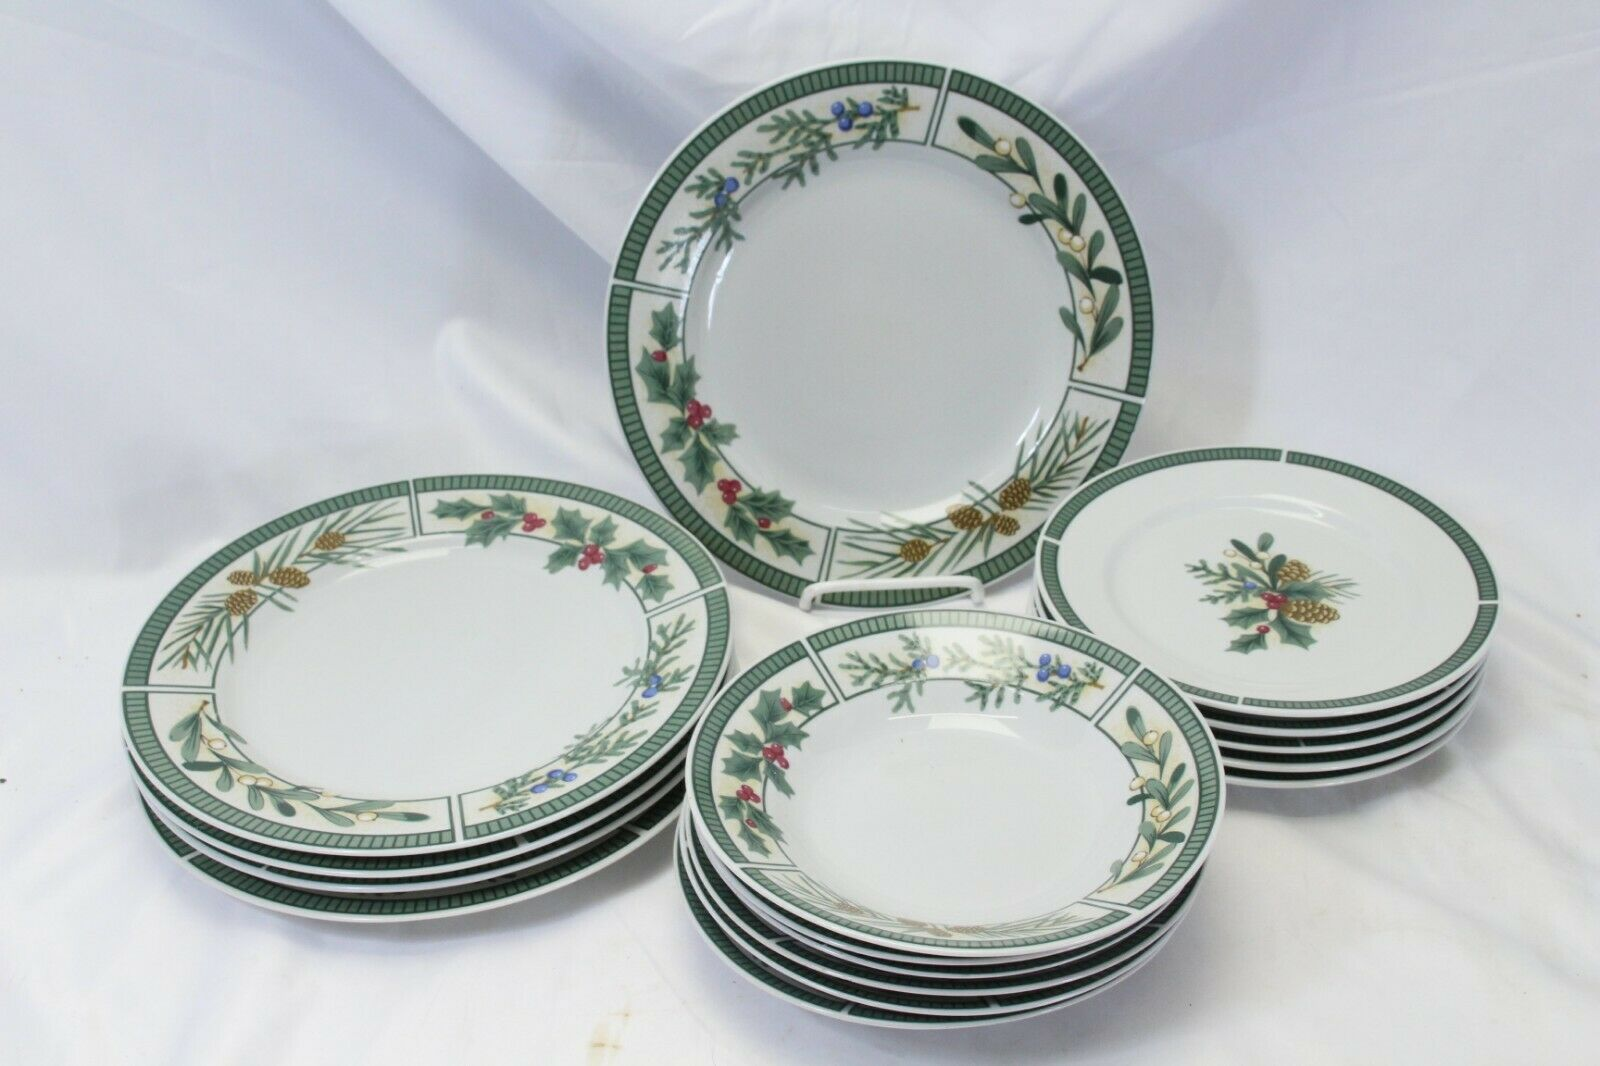 Fairfield Wintergreen Plates and Bowls Lot of 15  Christmas